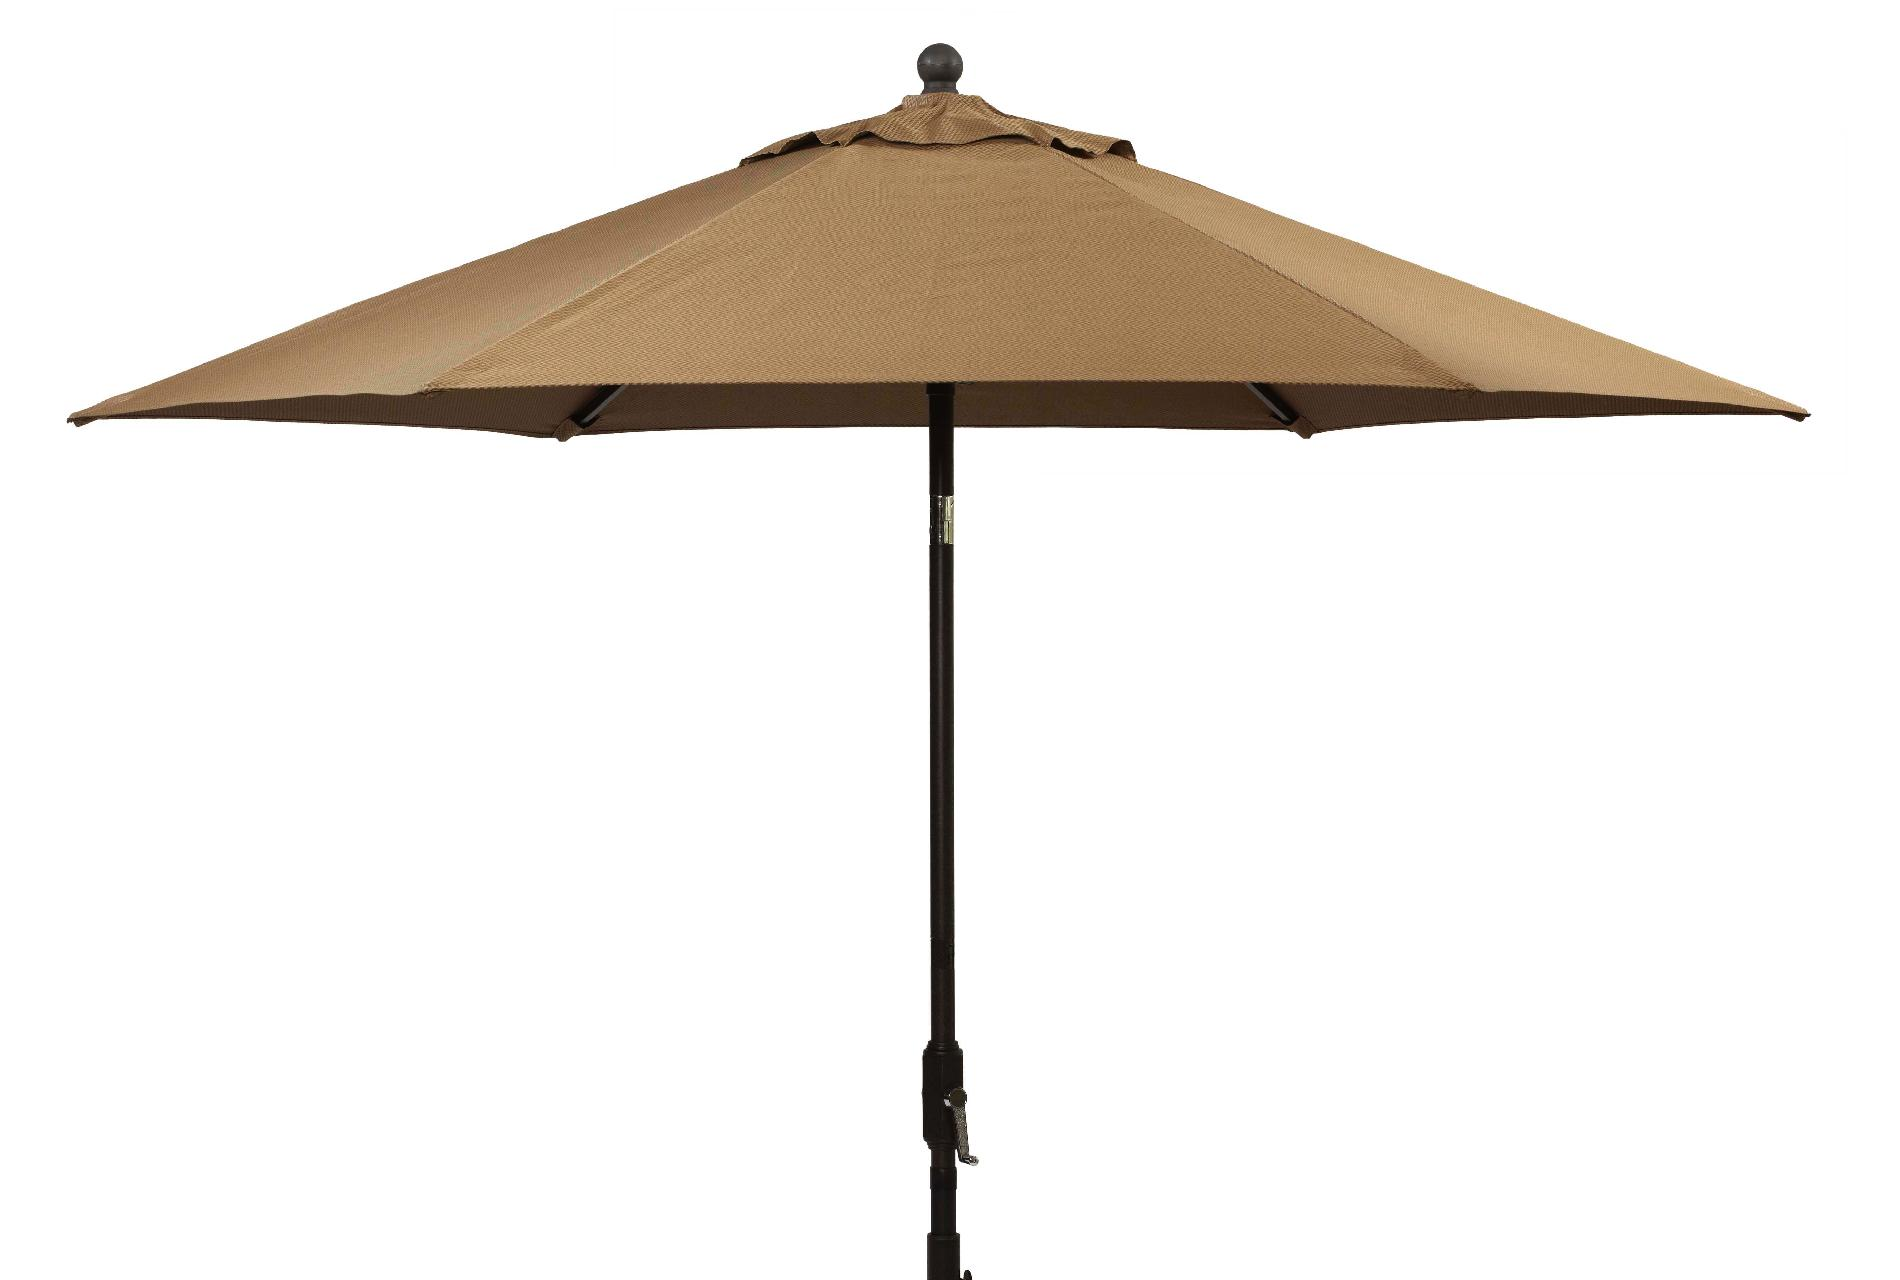 outdoor umbrella agio international arcadia umbrella - sears SWDEVLS